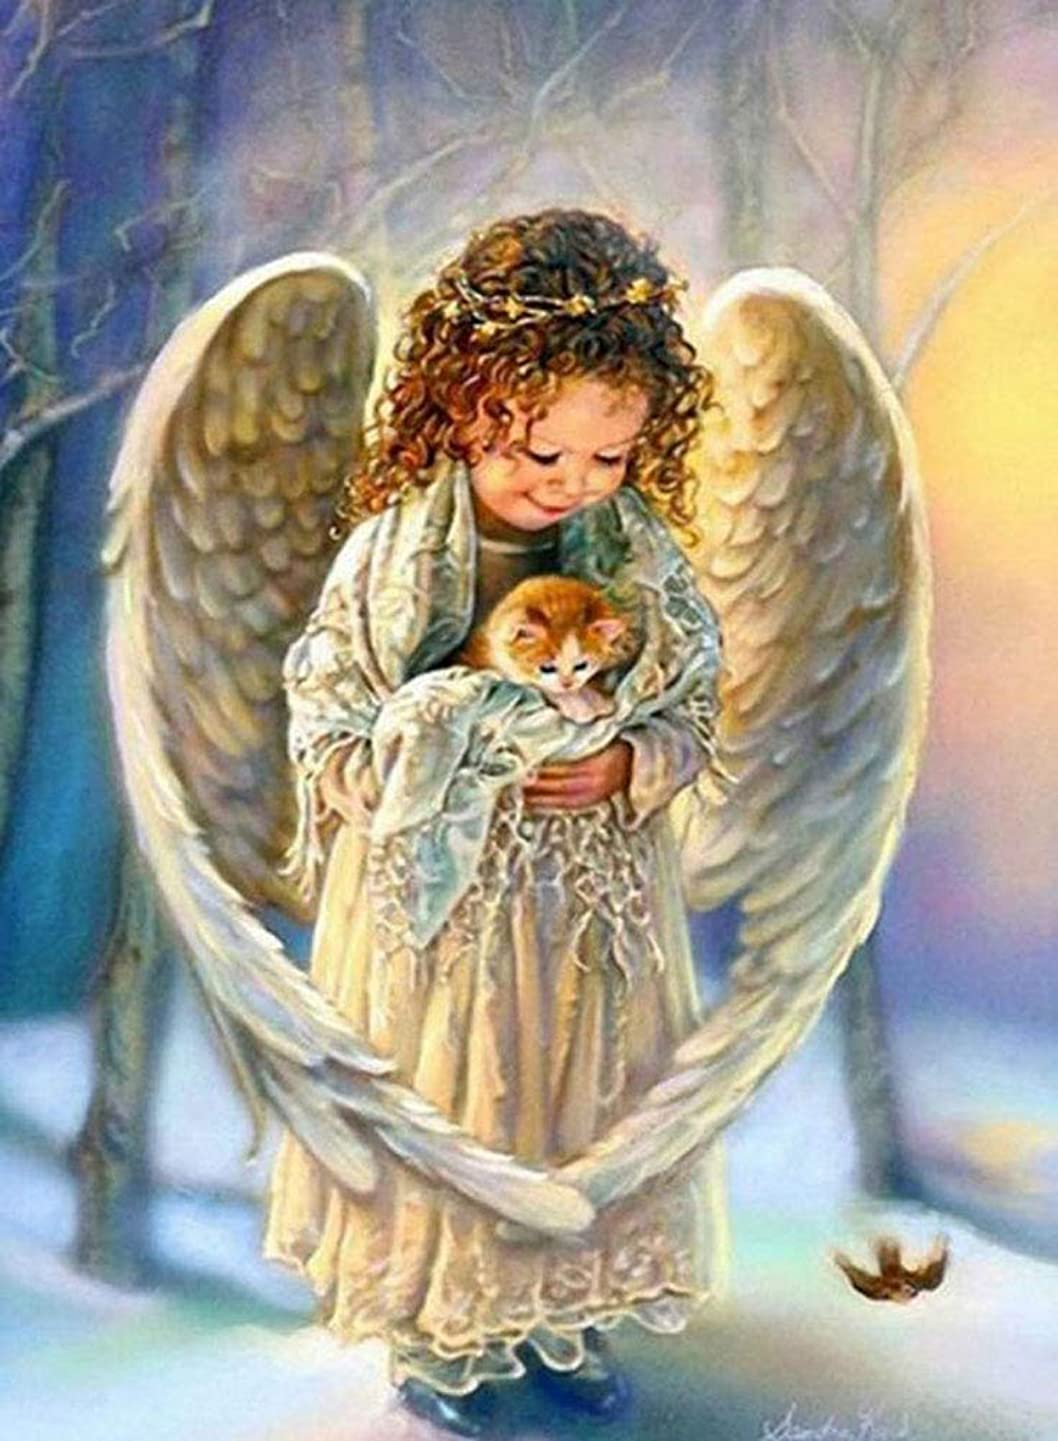 DIY 5D Diamond Painting Angel Wings Kits for Kids Crystal Rhinestone Embroidery Cross Stitch Diamond for Home Wall Decor 9.4X13.4 inches